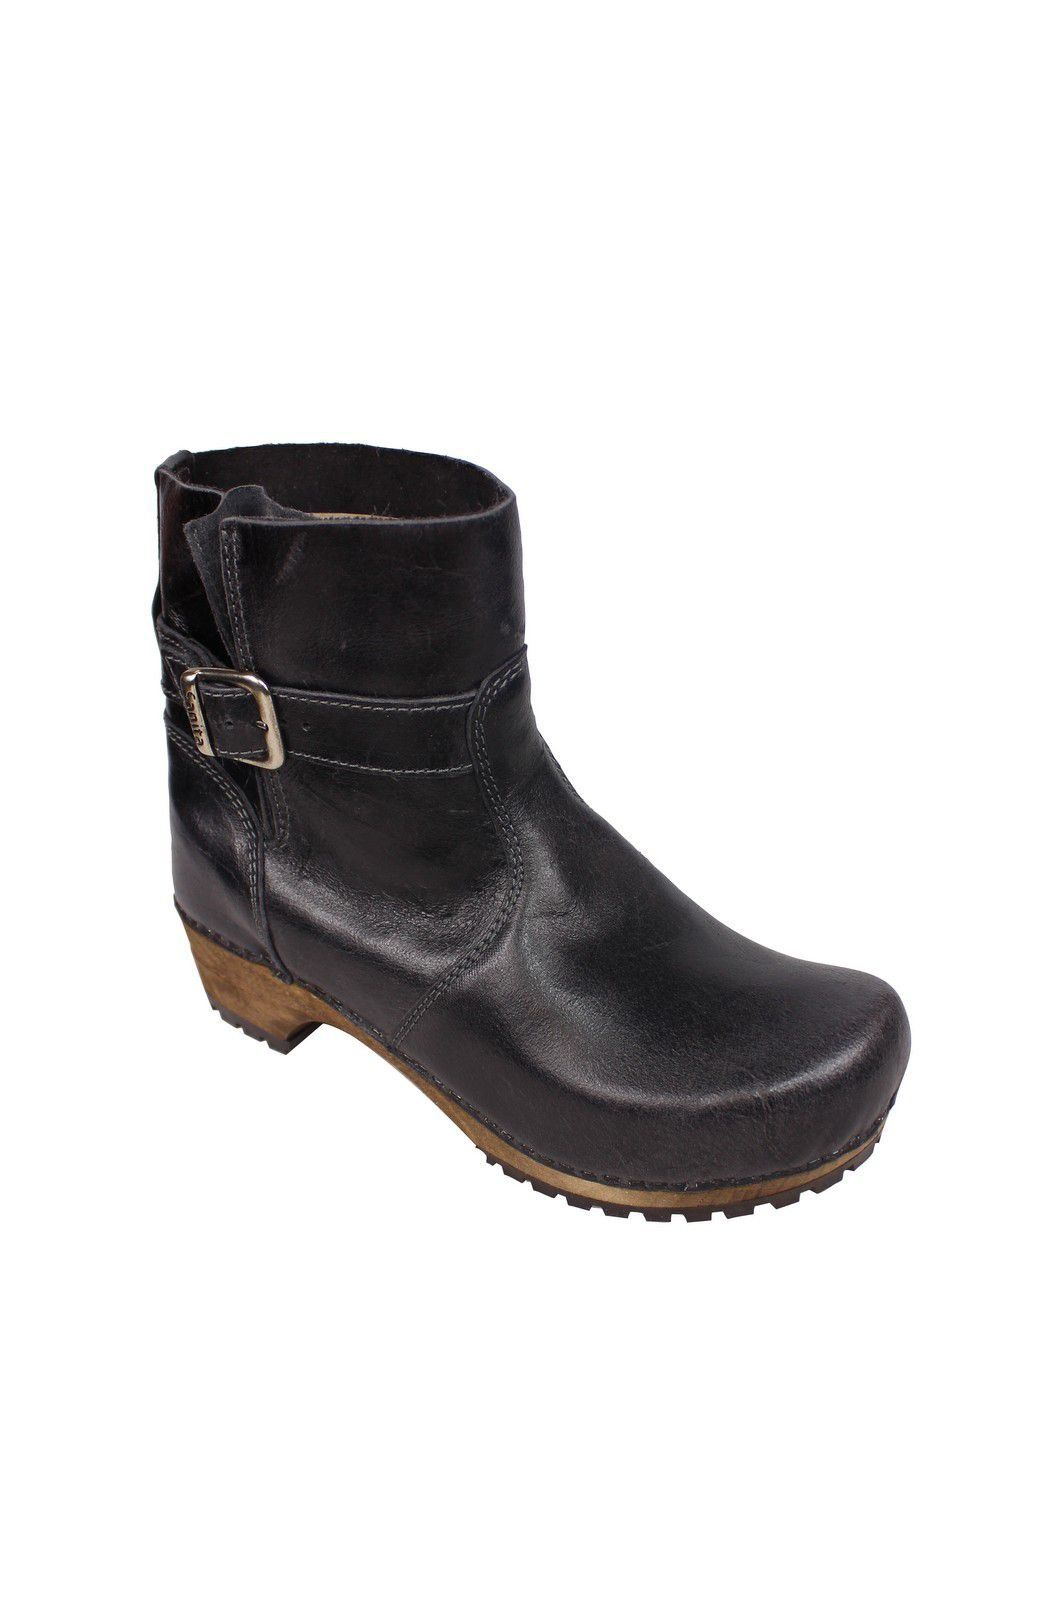 Sanita Mina Low Classic Clog Boot Black 452330